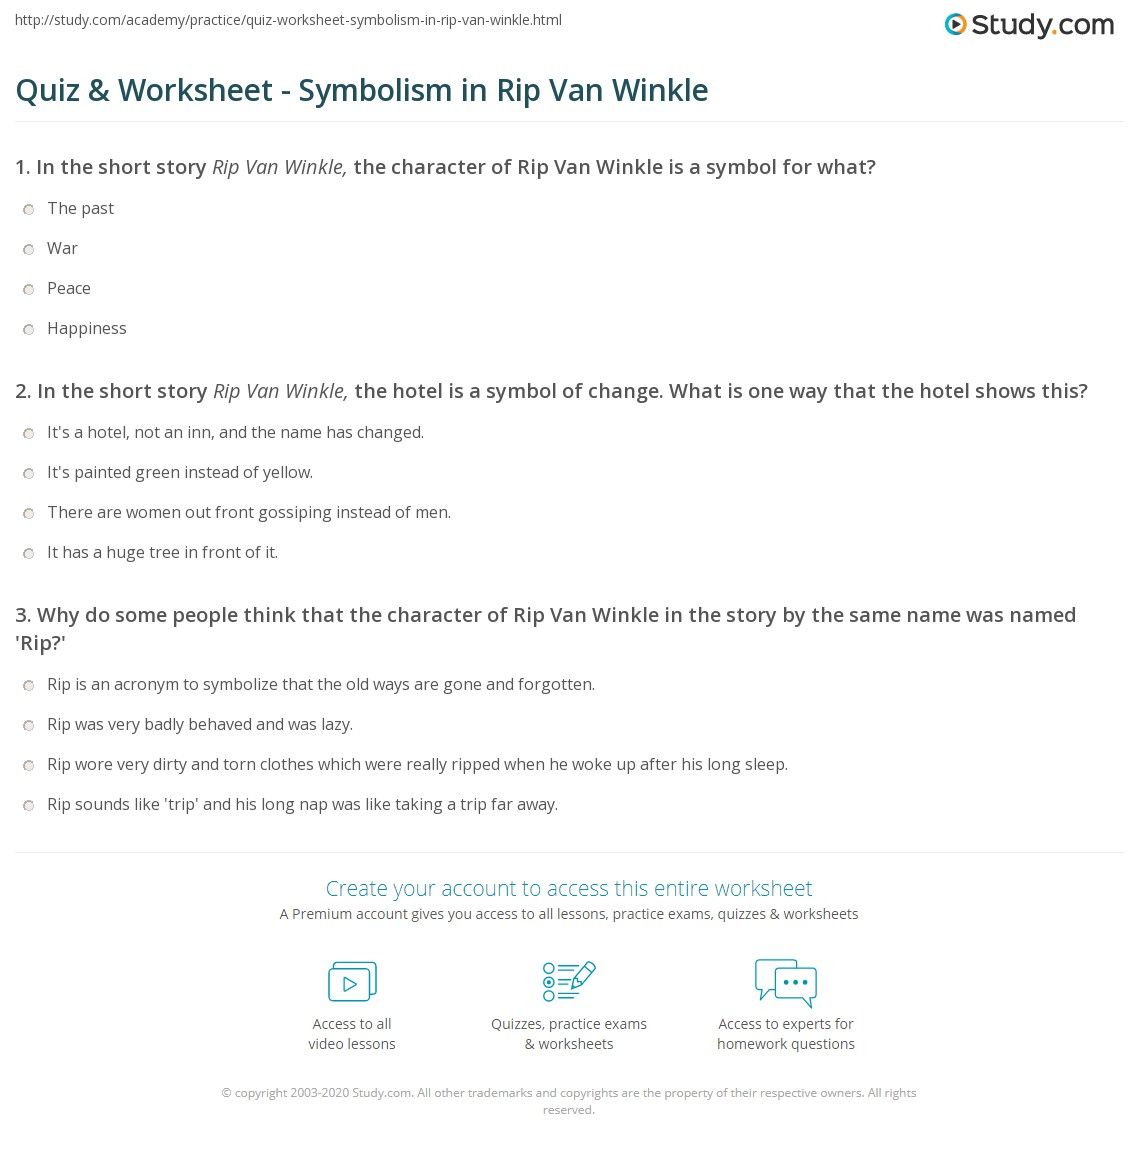 Quiz worksheet symbolism in rip van winkle study in the short story rip van winkle the hotel is a symbol of change what is one way that the hotel shows this buycottarizona